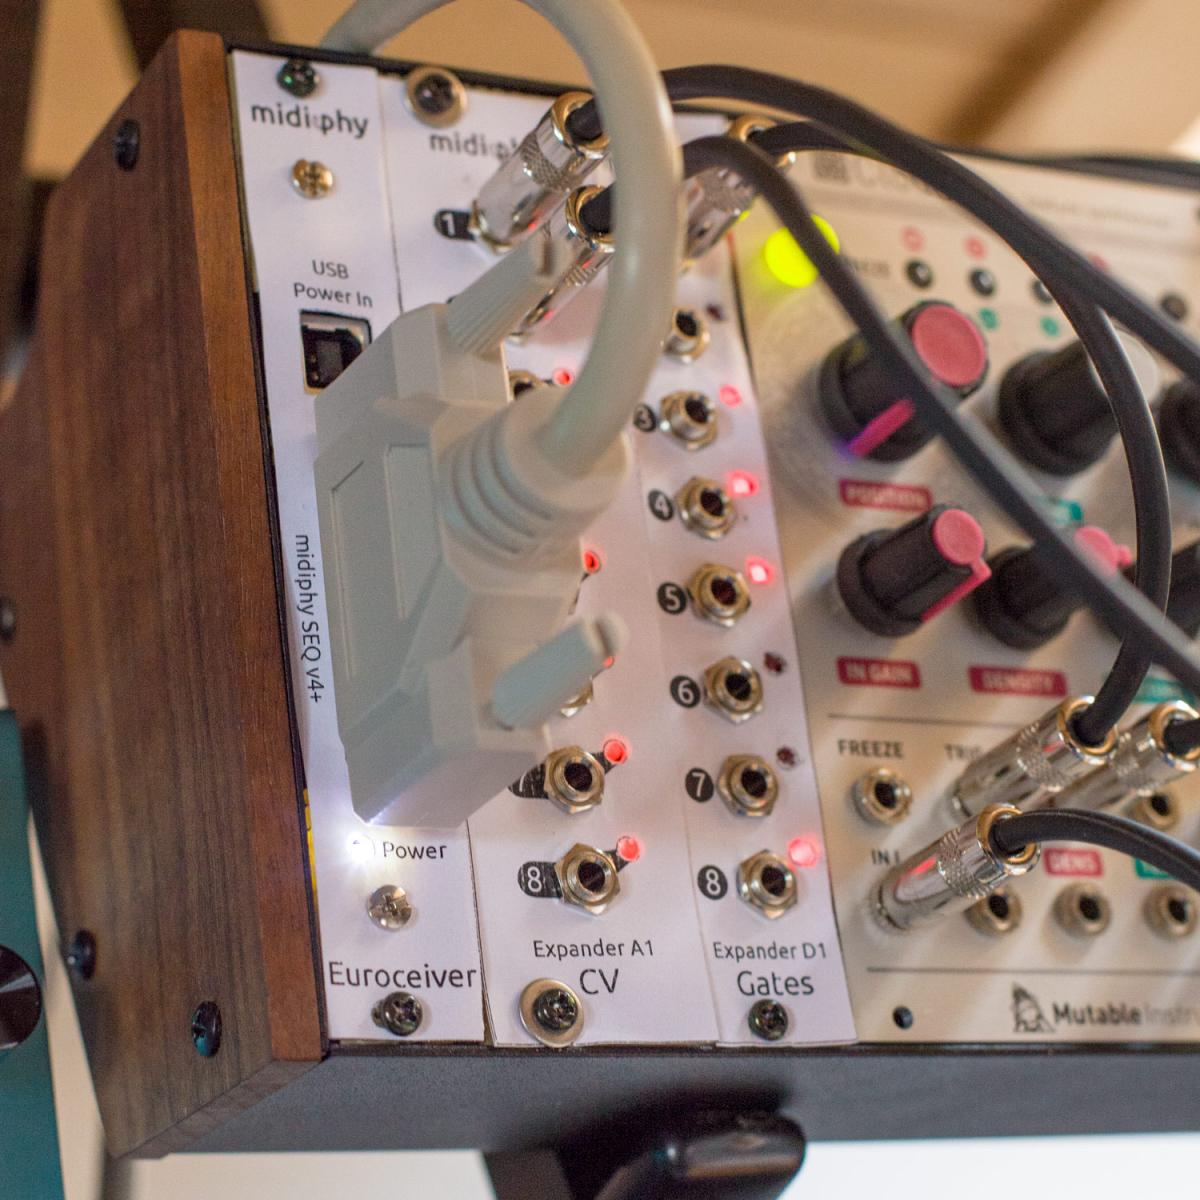 New eurorack modules from midiphy - preview